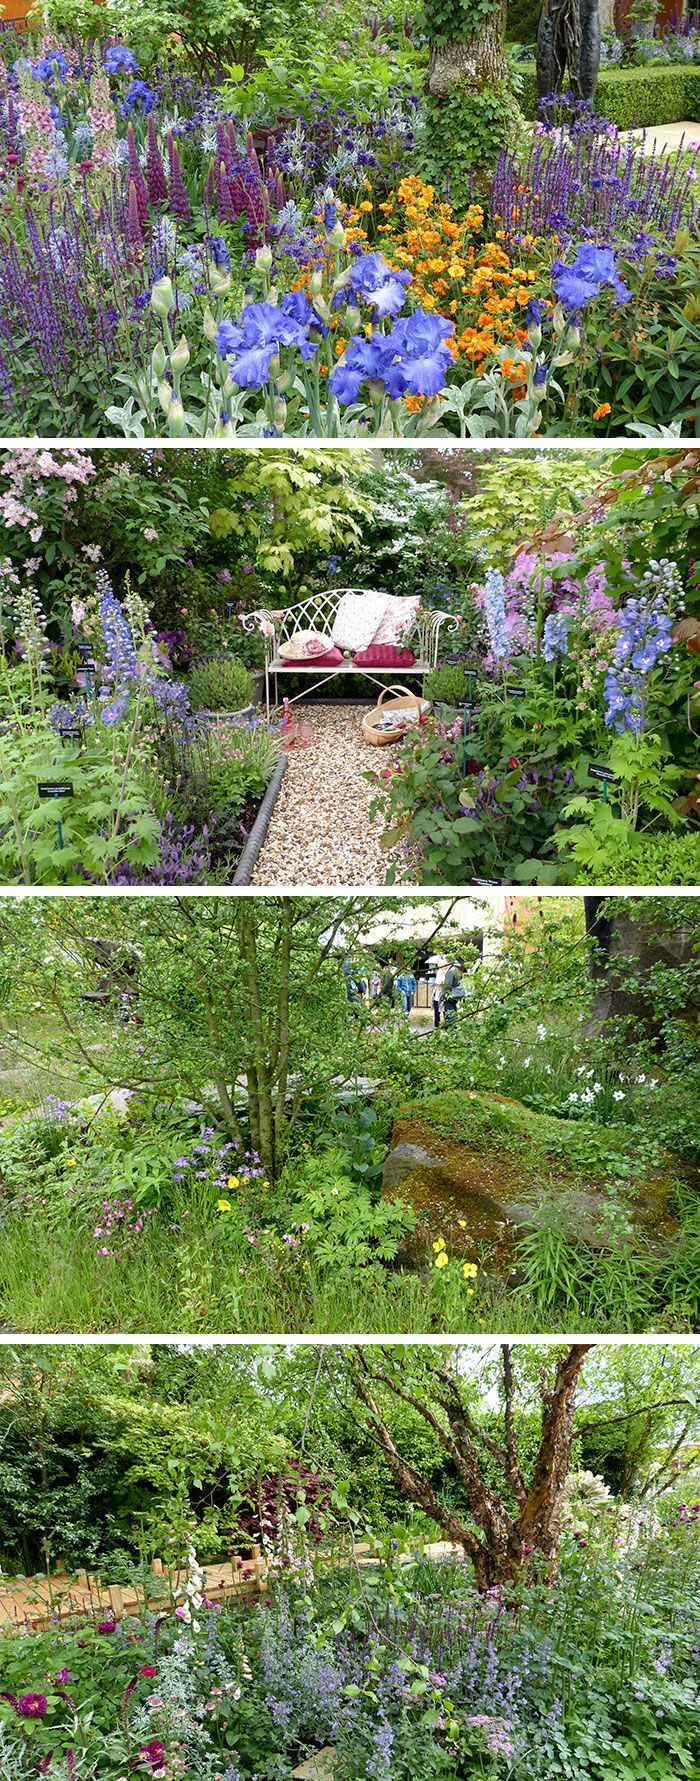 422 best images about Gardens - Chelsea Flower Show on Pinterest